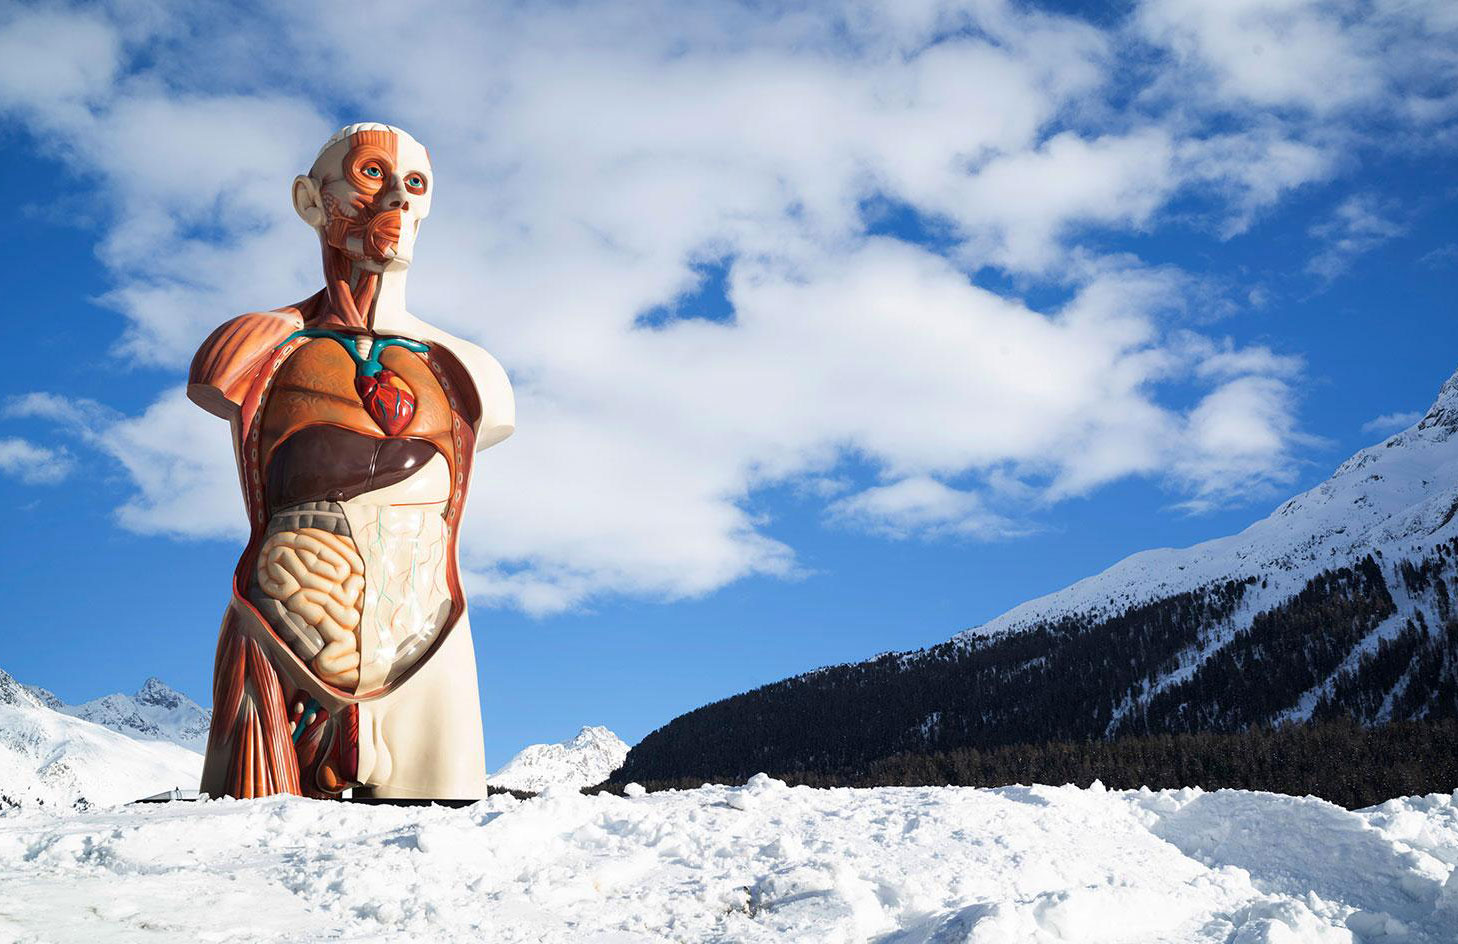 Damien Hirst: Mental Escapology sees 40 sculptures take up residence in the snowy Swiss landscape